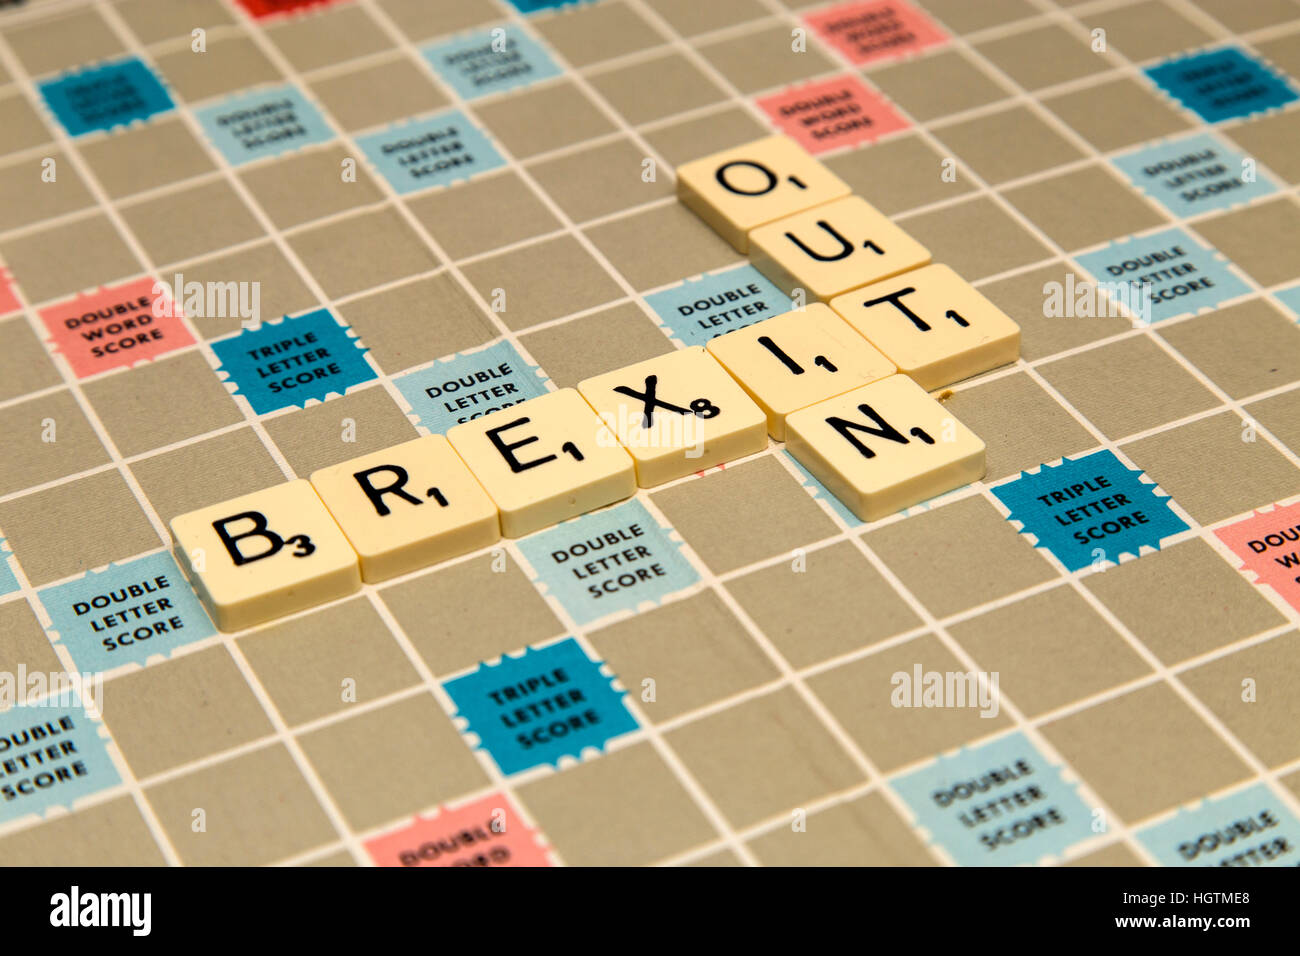 Scrabble letters spelling out Brexit letters, in or out? - Stock Image